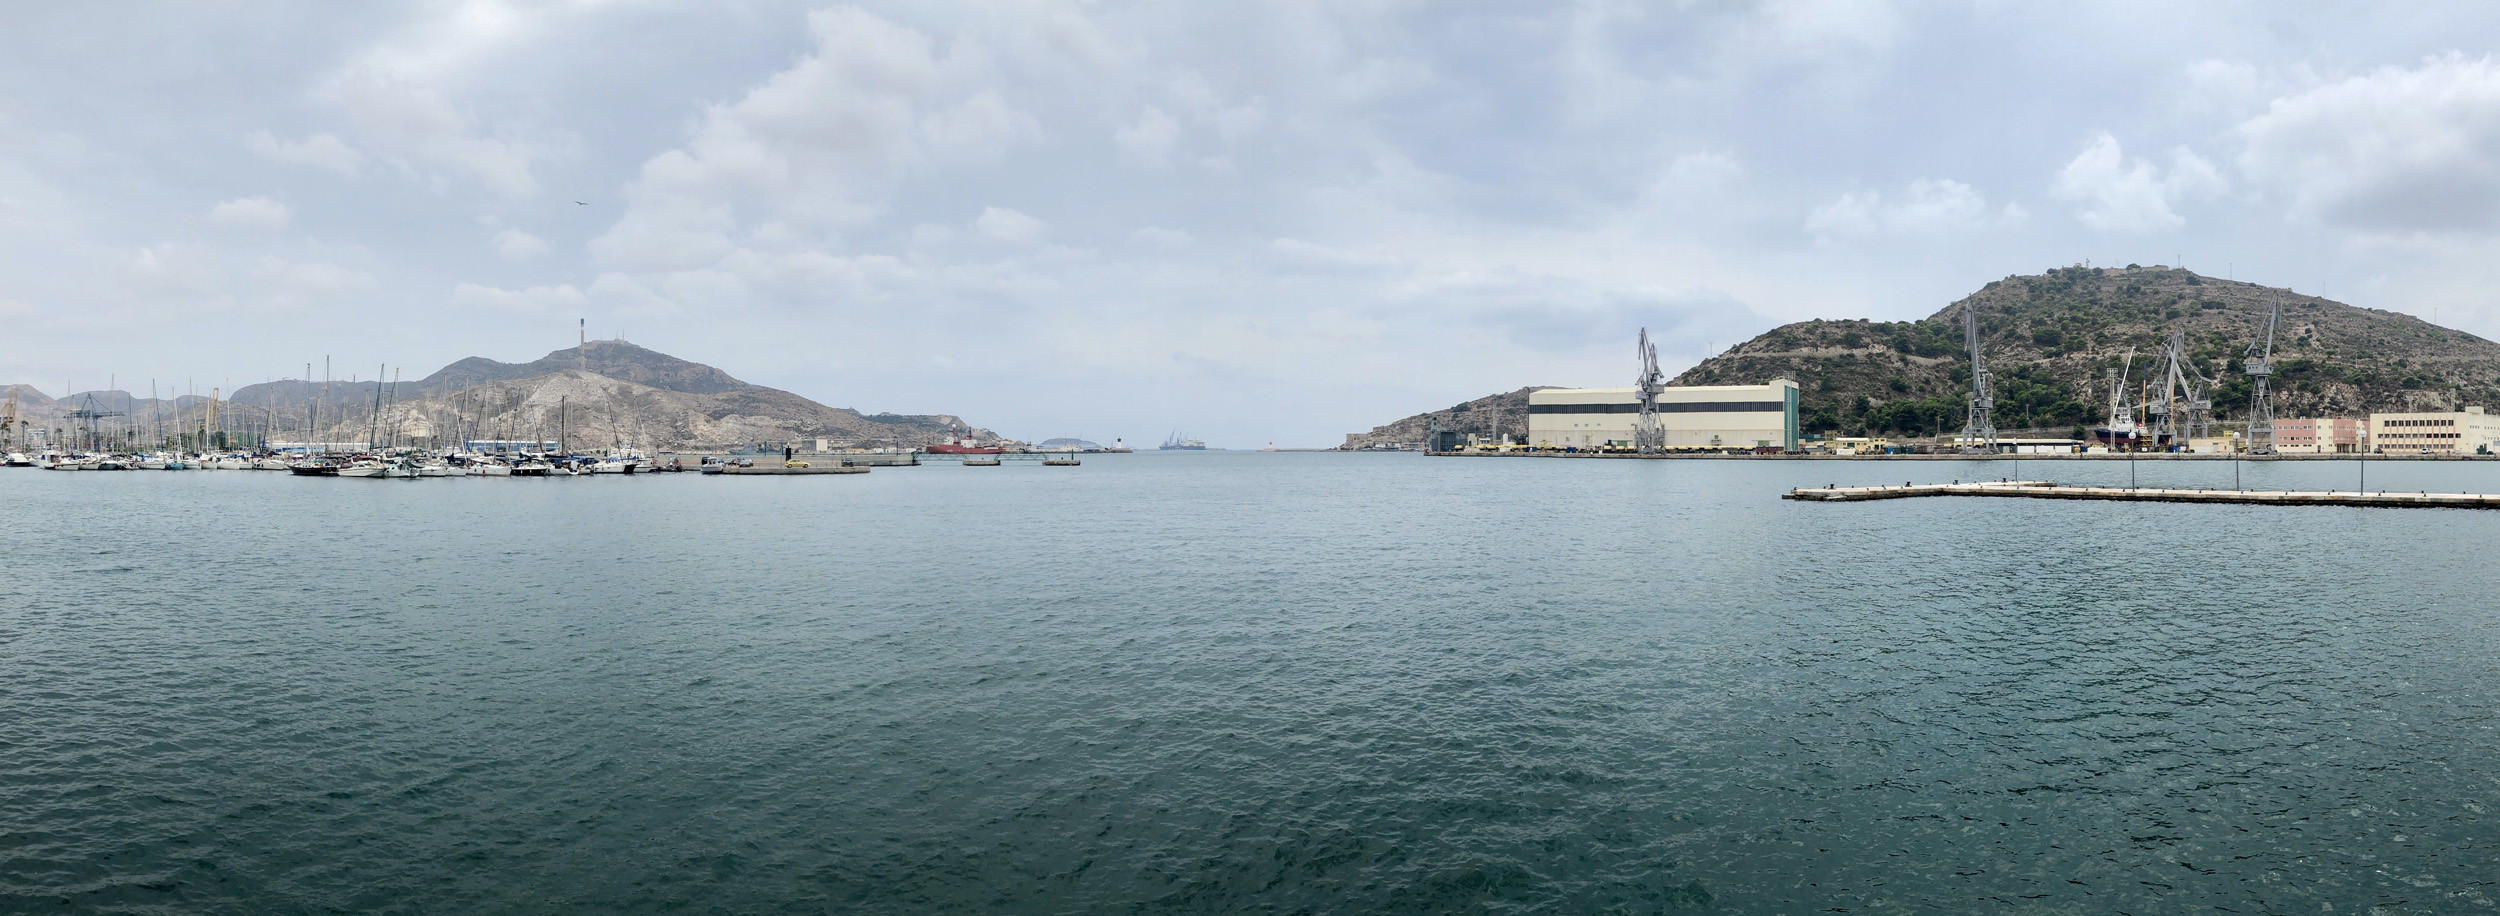 A panorama of the see seen from Cartagena, Murcia, Spain.